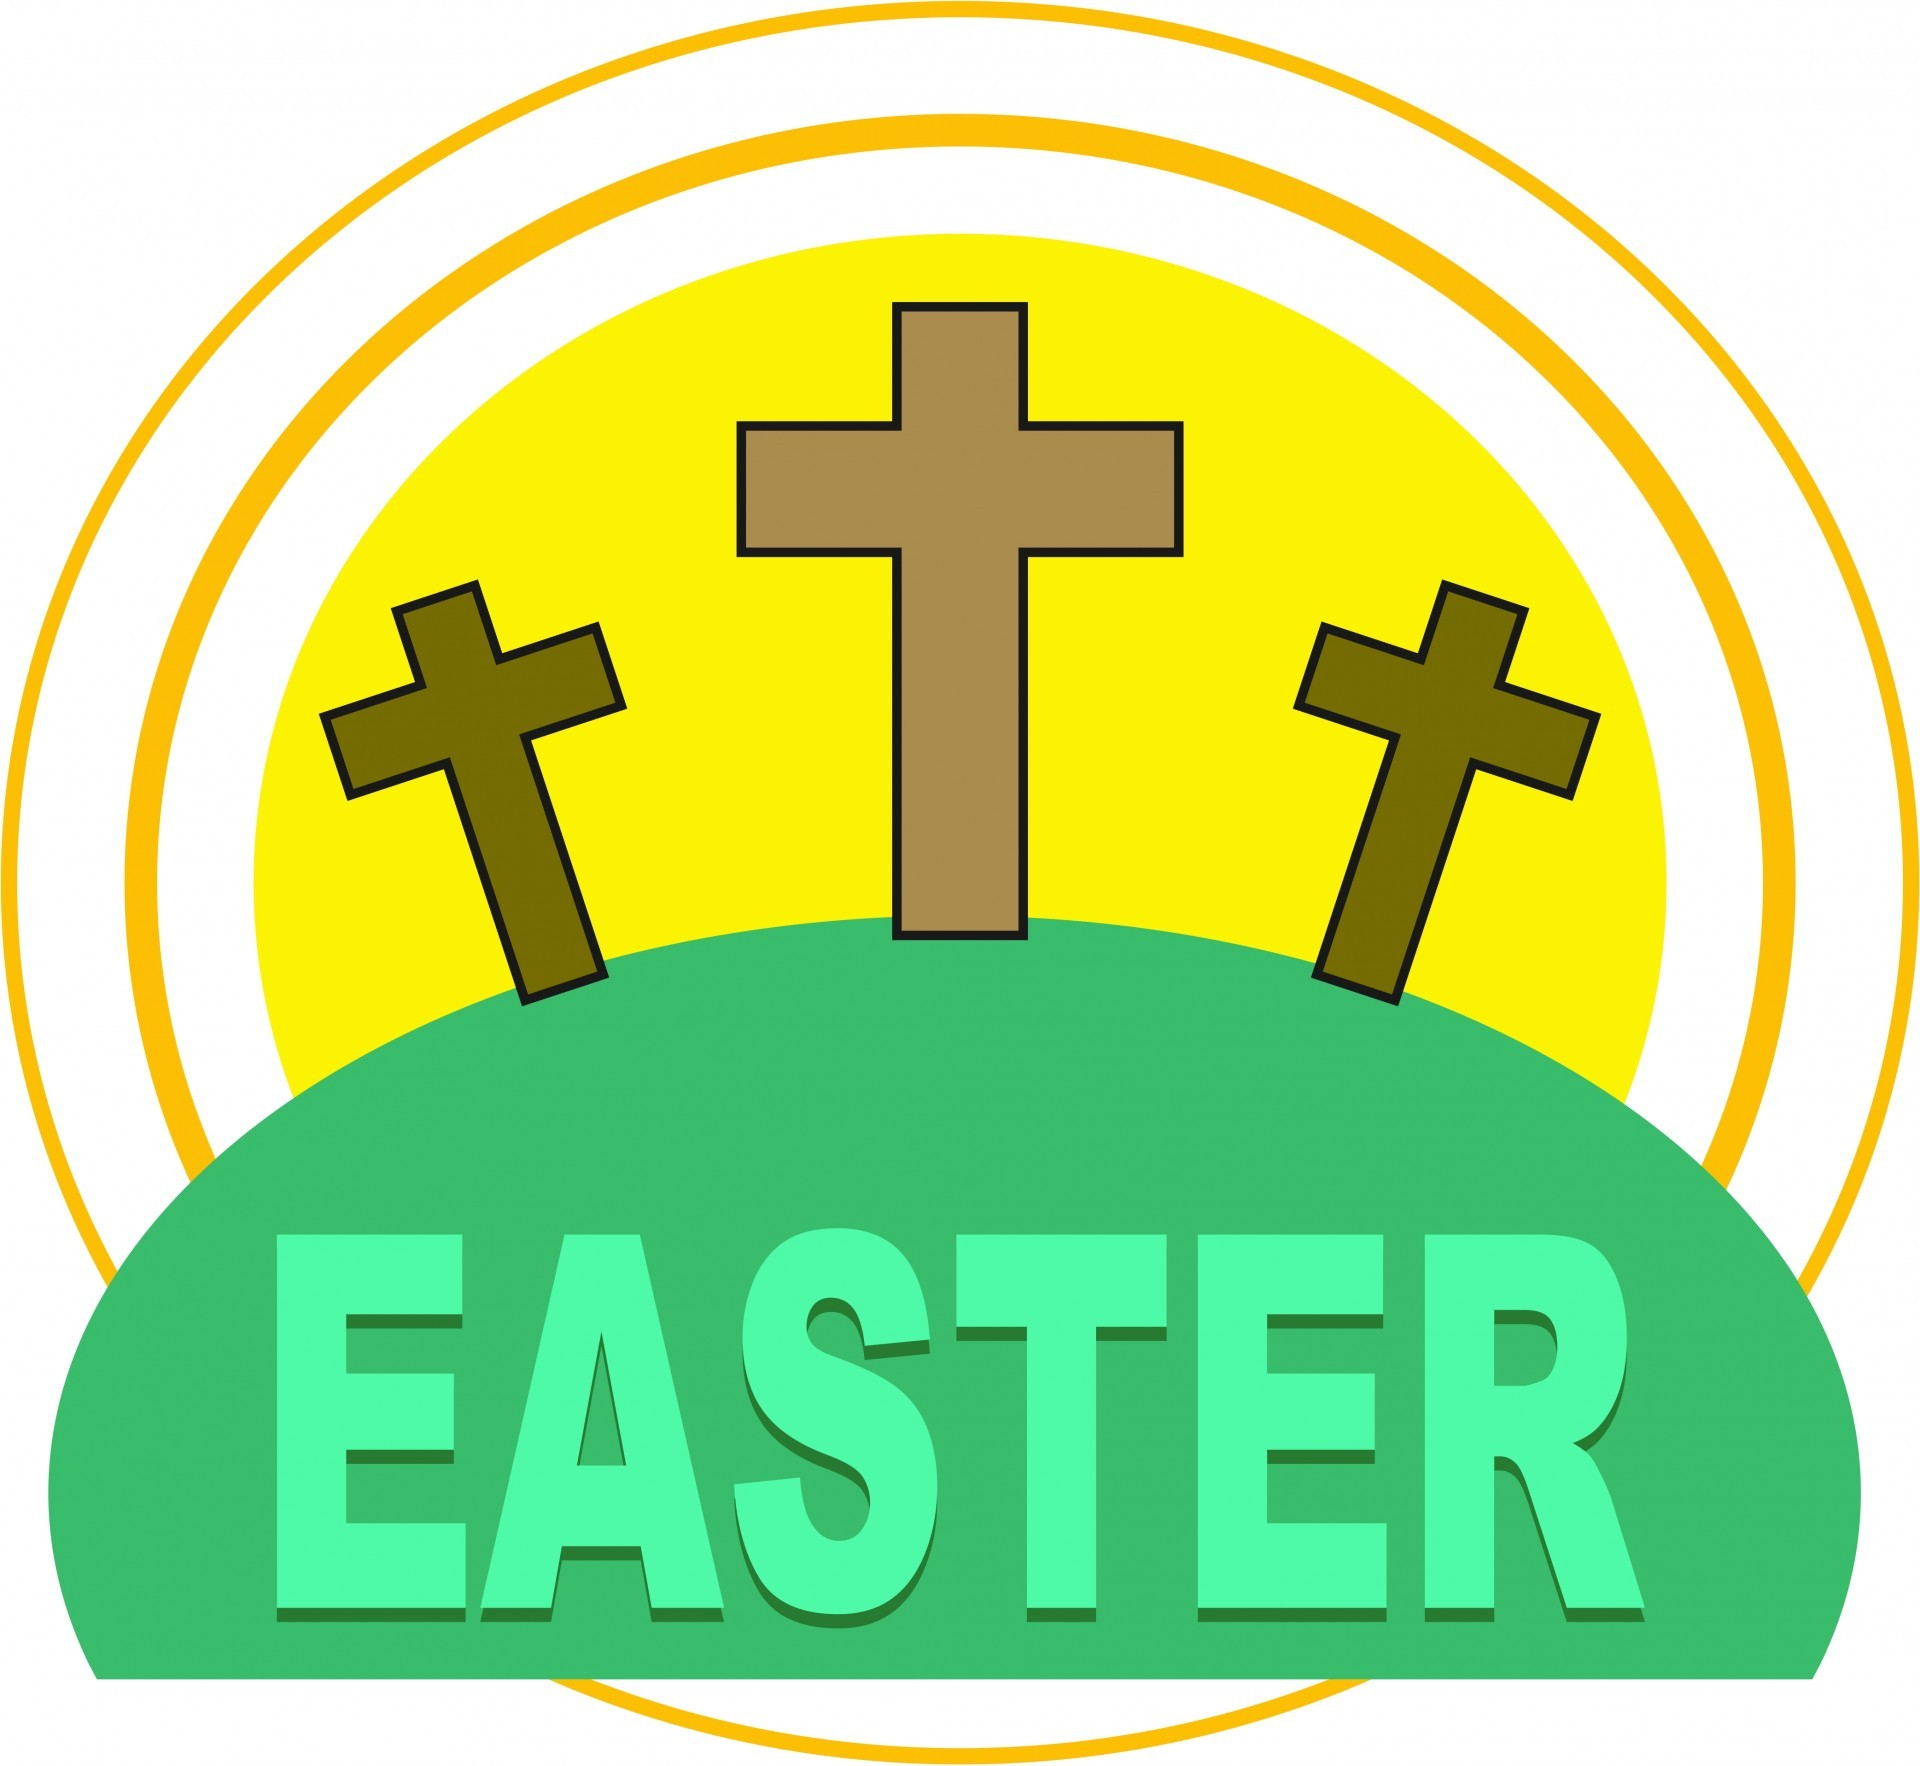 Easter clipart church banner royalty free library Free Church Clipart easter, Download Free Clip Art on Owips.com banner royalty free library